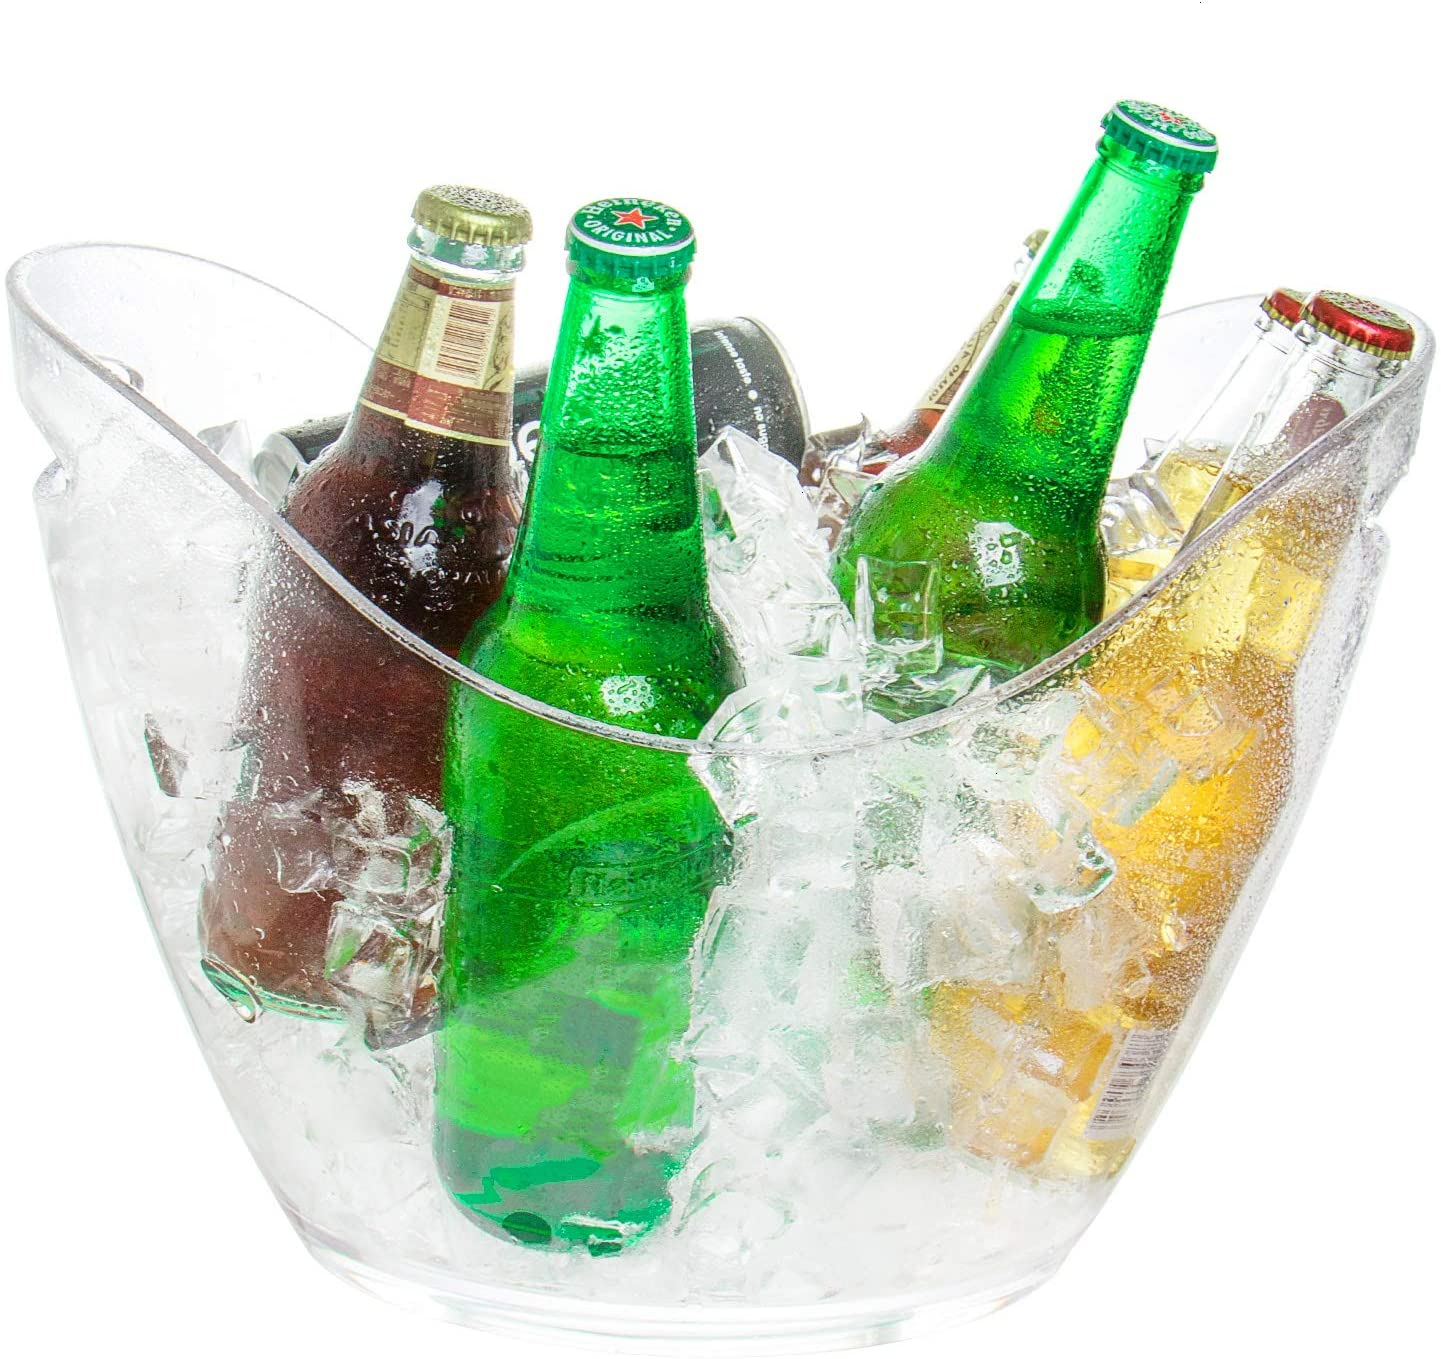 Yoken Ice Bucket, 8 Liter Ice Tub, Plastic Clear Beverage Tub for Party Drinks, Champagne, Wine or Beer Bottles, Food Grade